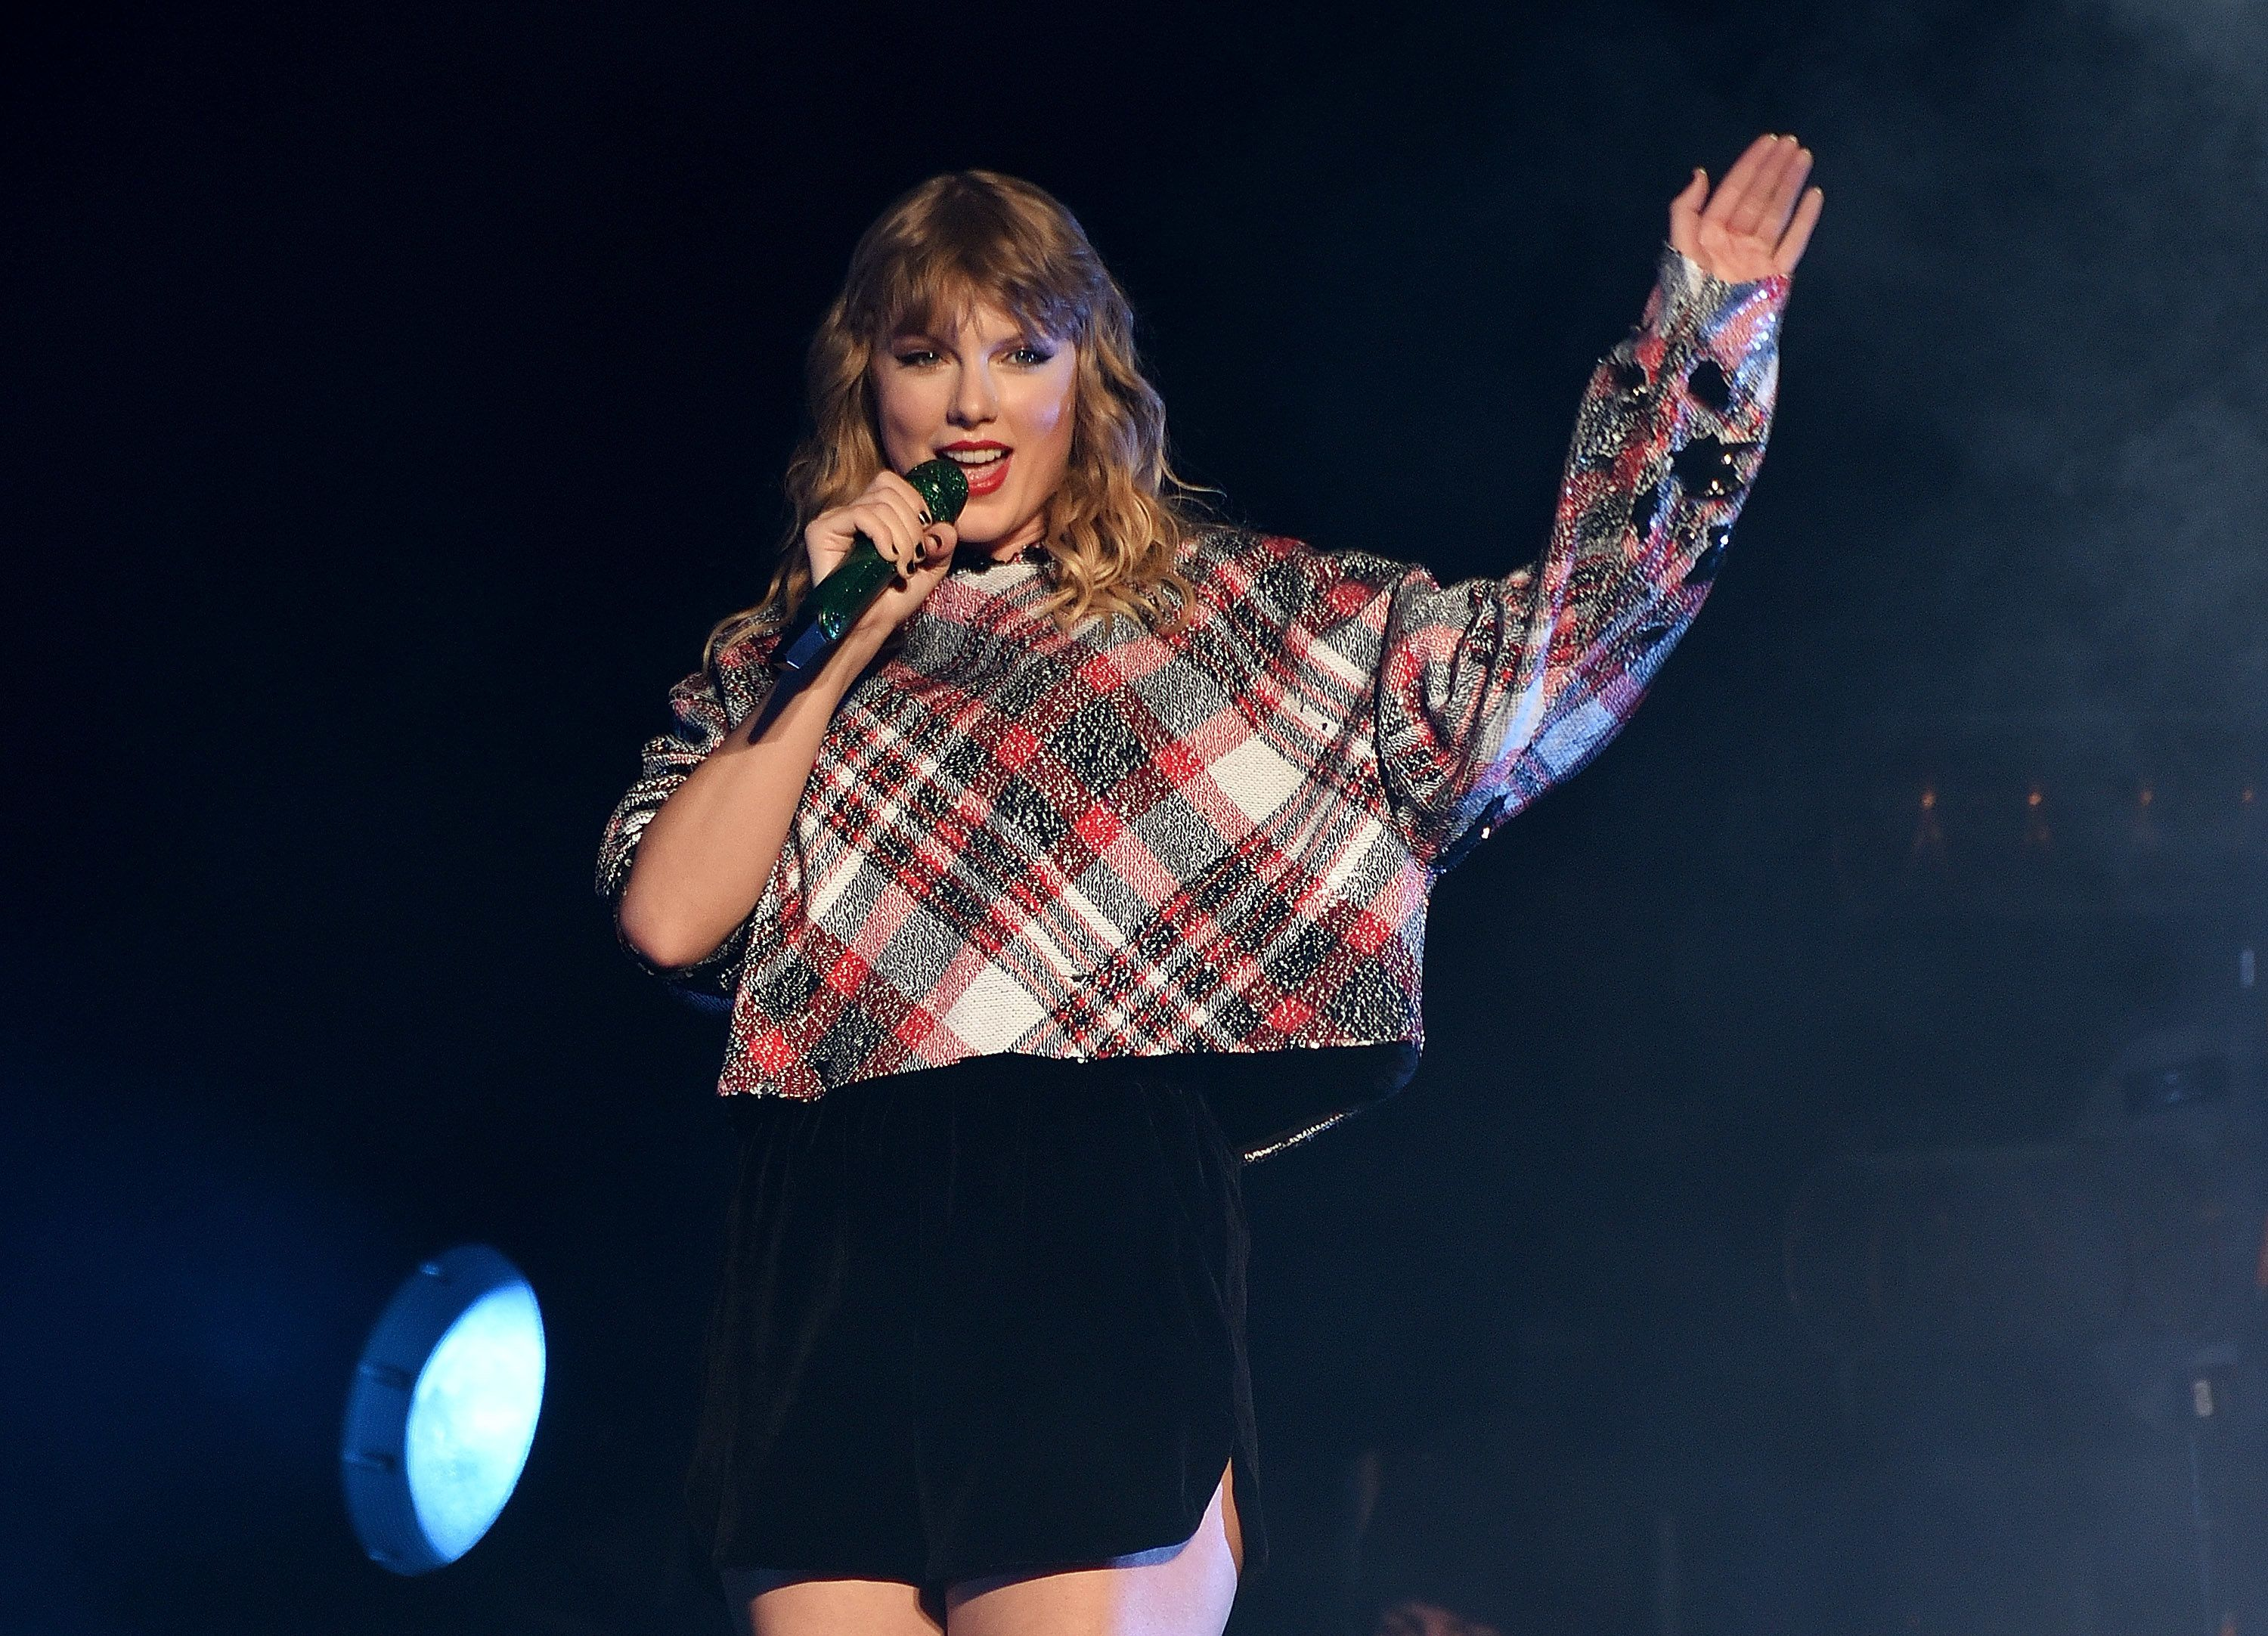 Taylor Swift performs during the 99.7 NOW! POPTOPIA in San Jose, California, on Dec. 2.